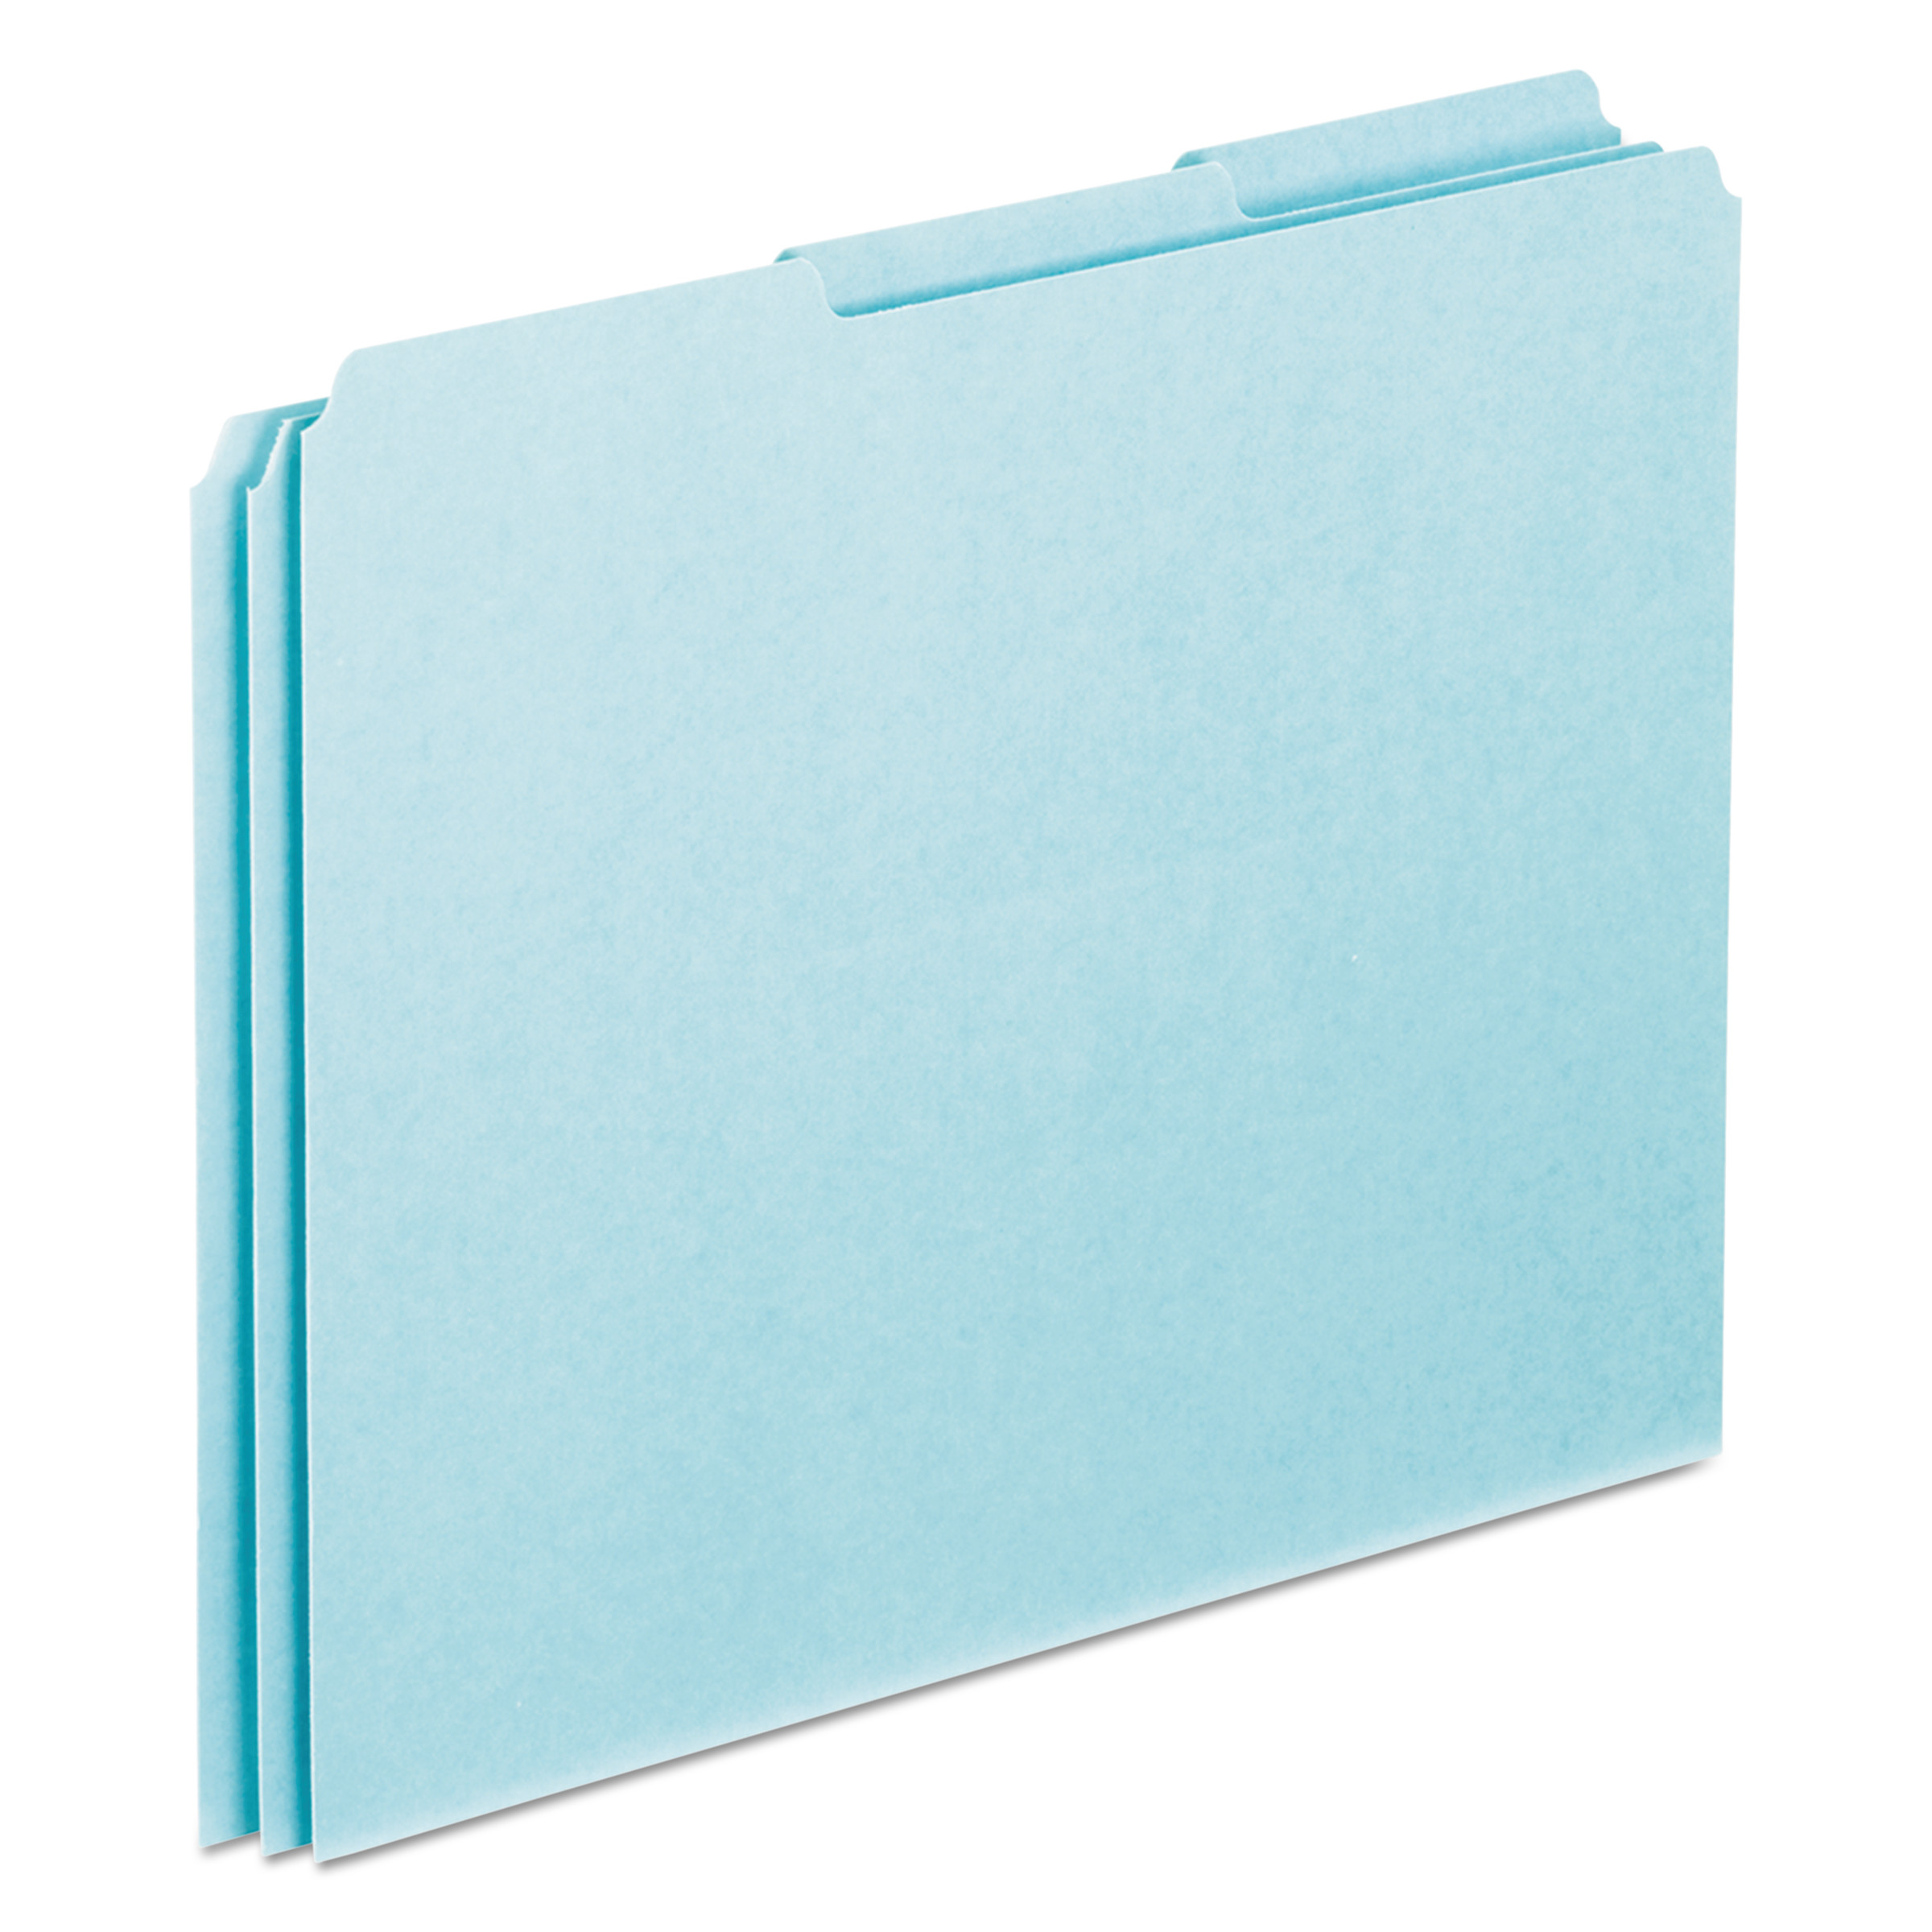 Pendaflex Blank Self Tab Pressboard File Guides by TOPS BUSINESS FORMS